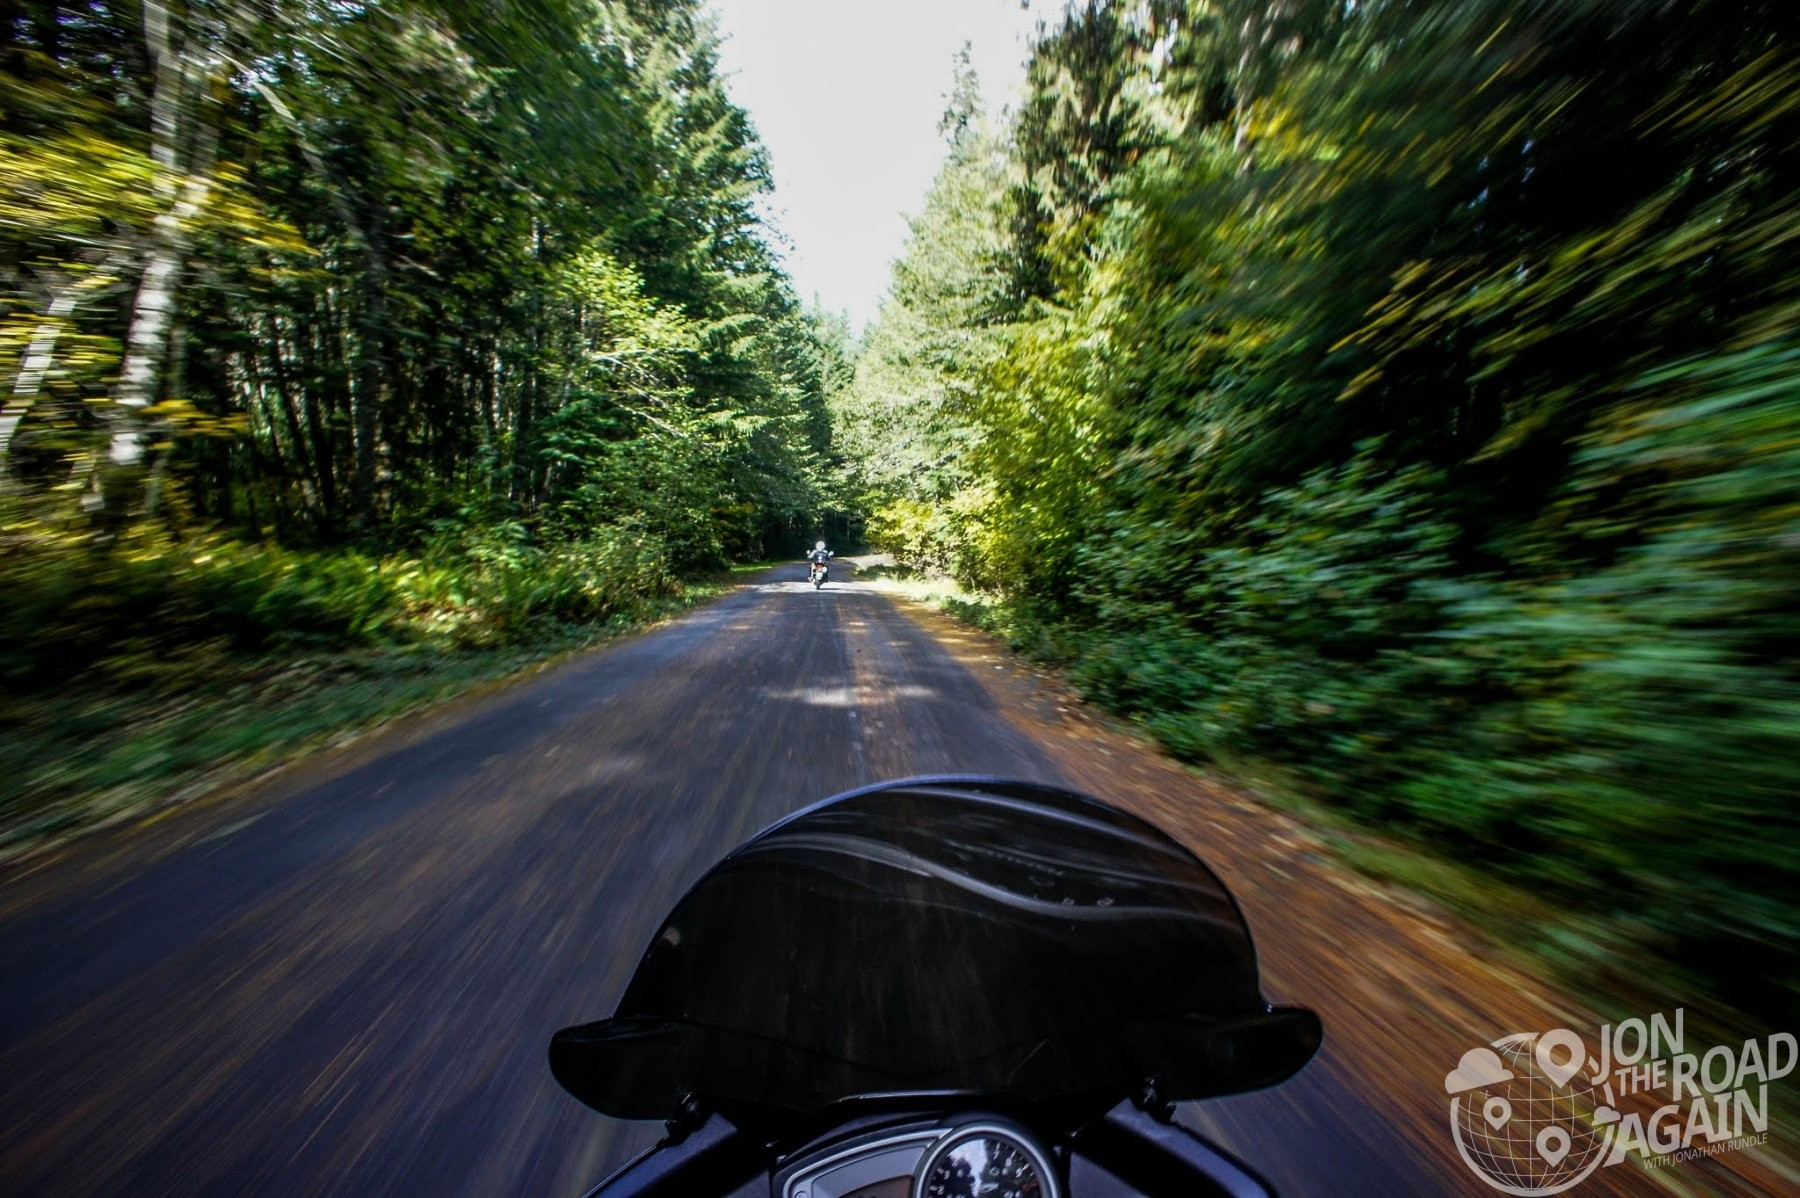 Riding motorcycles near Mt. St. Helens